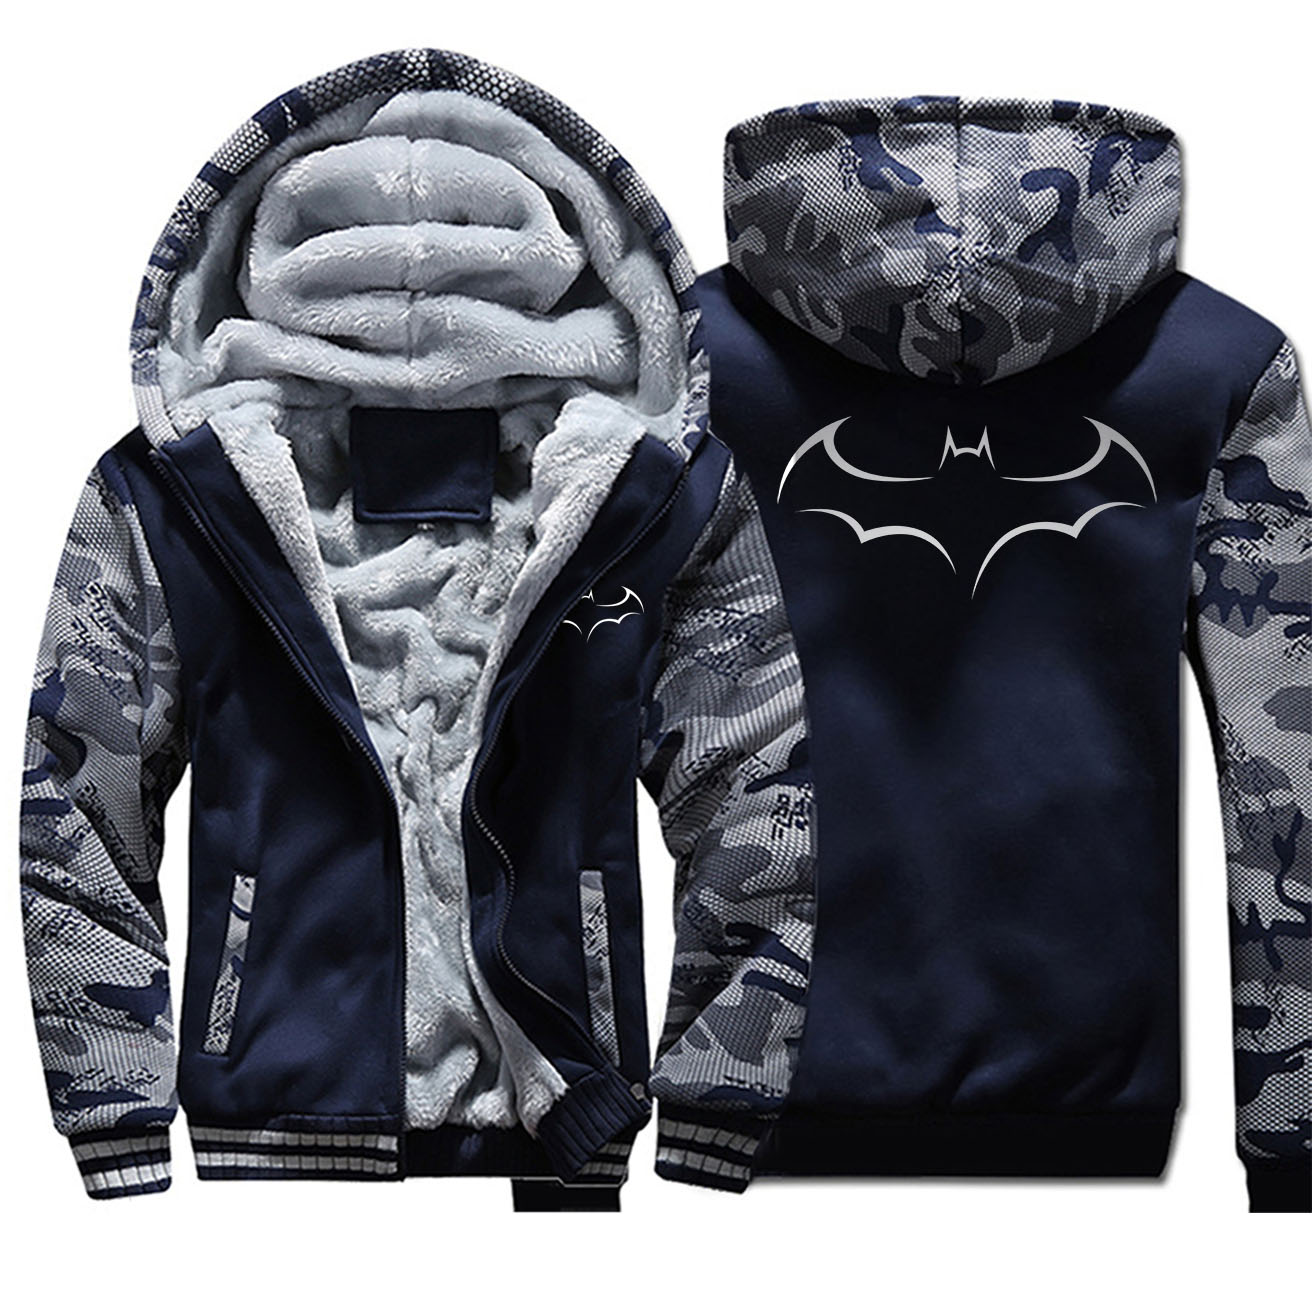 Batman Bruce Wayne Jackets Men Hoodies Superhero Sweatshirts Winter Thick Feece Zipper Coats Sportswear Camo Superhero Plus Size